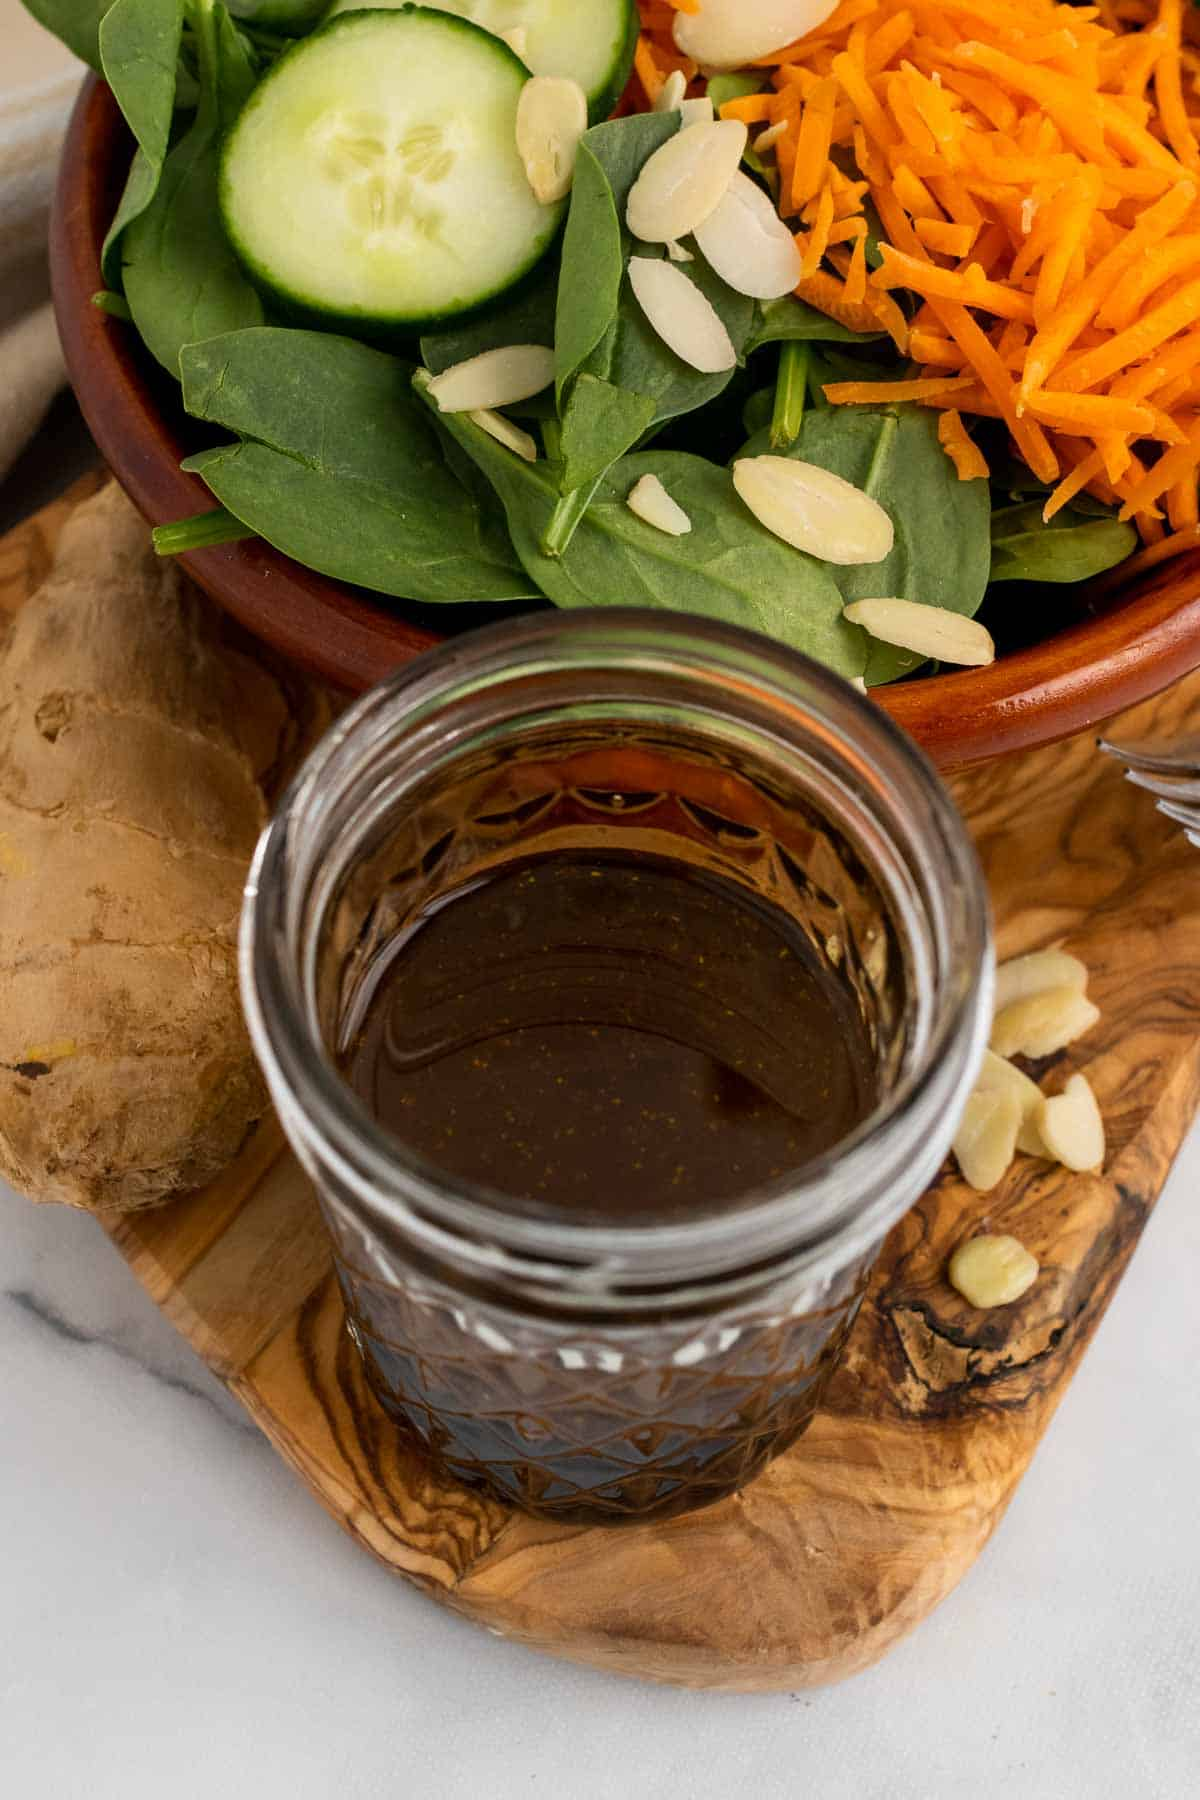 Glass of vinaigrette in front of salad bowl